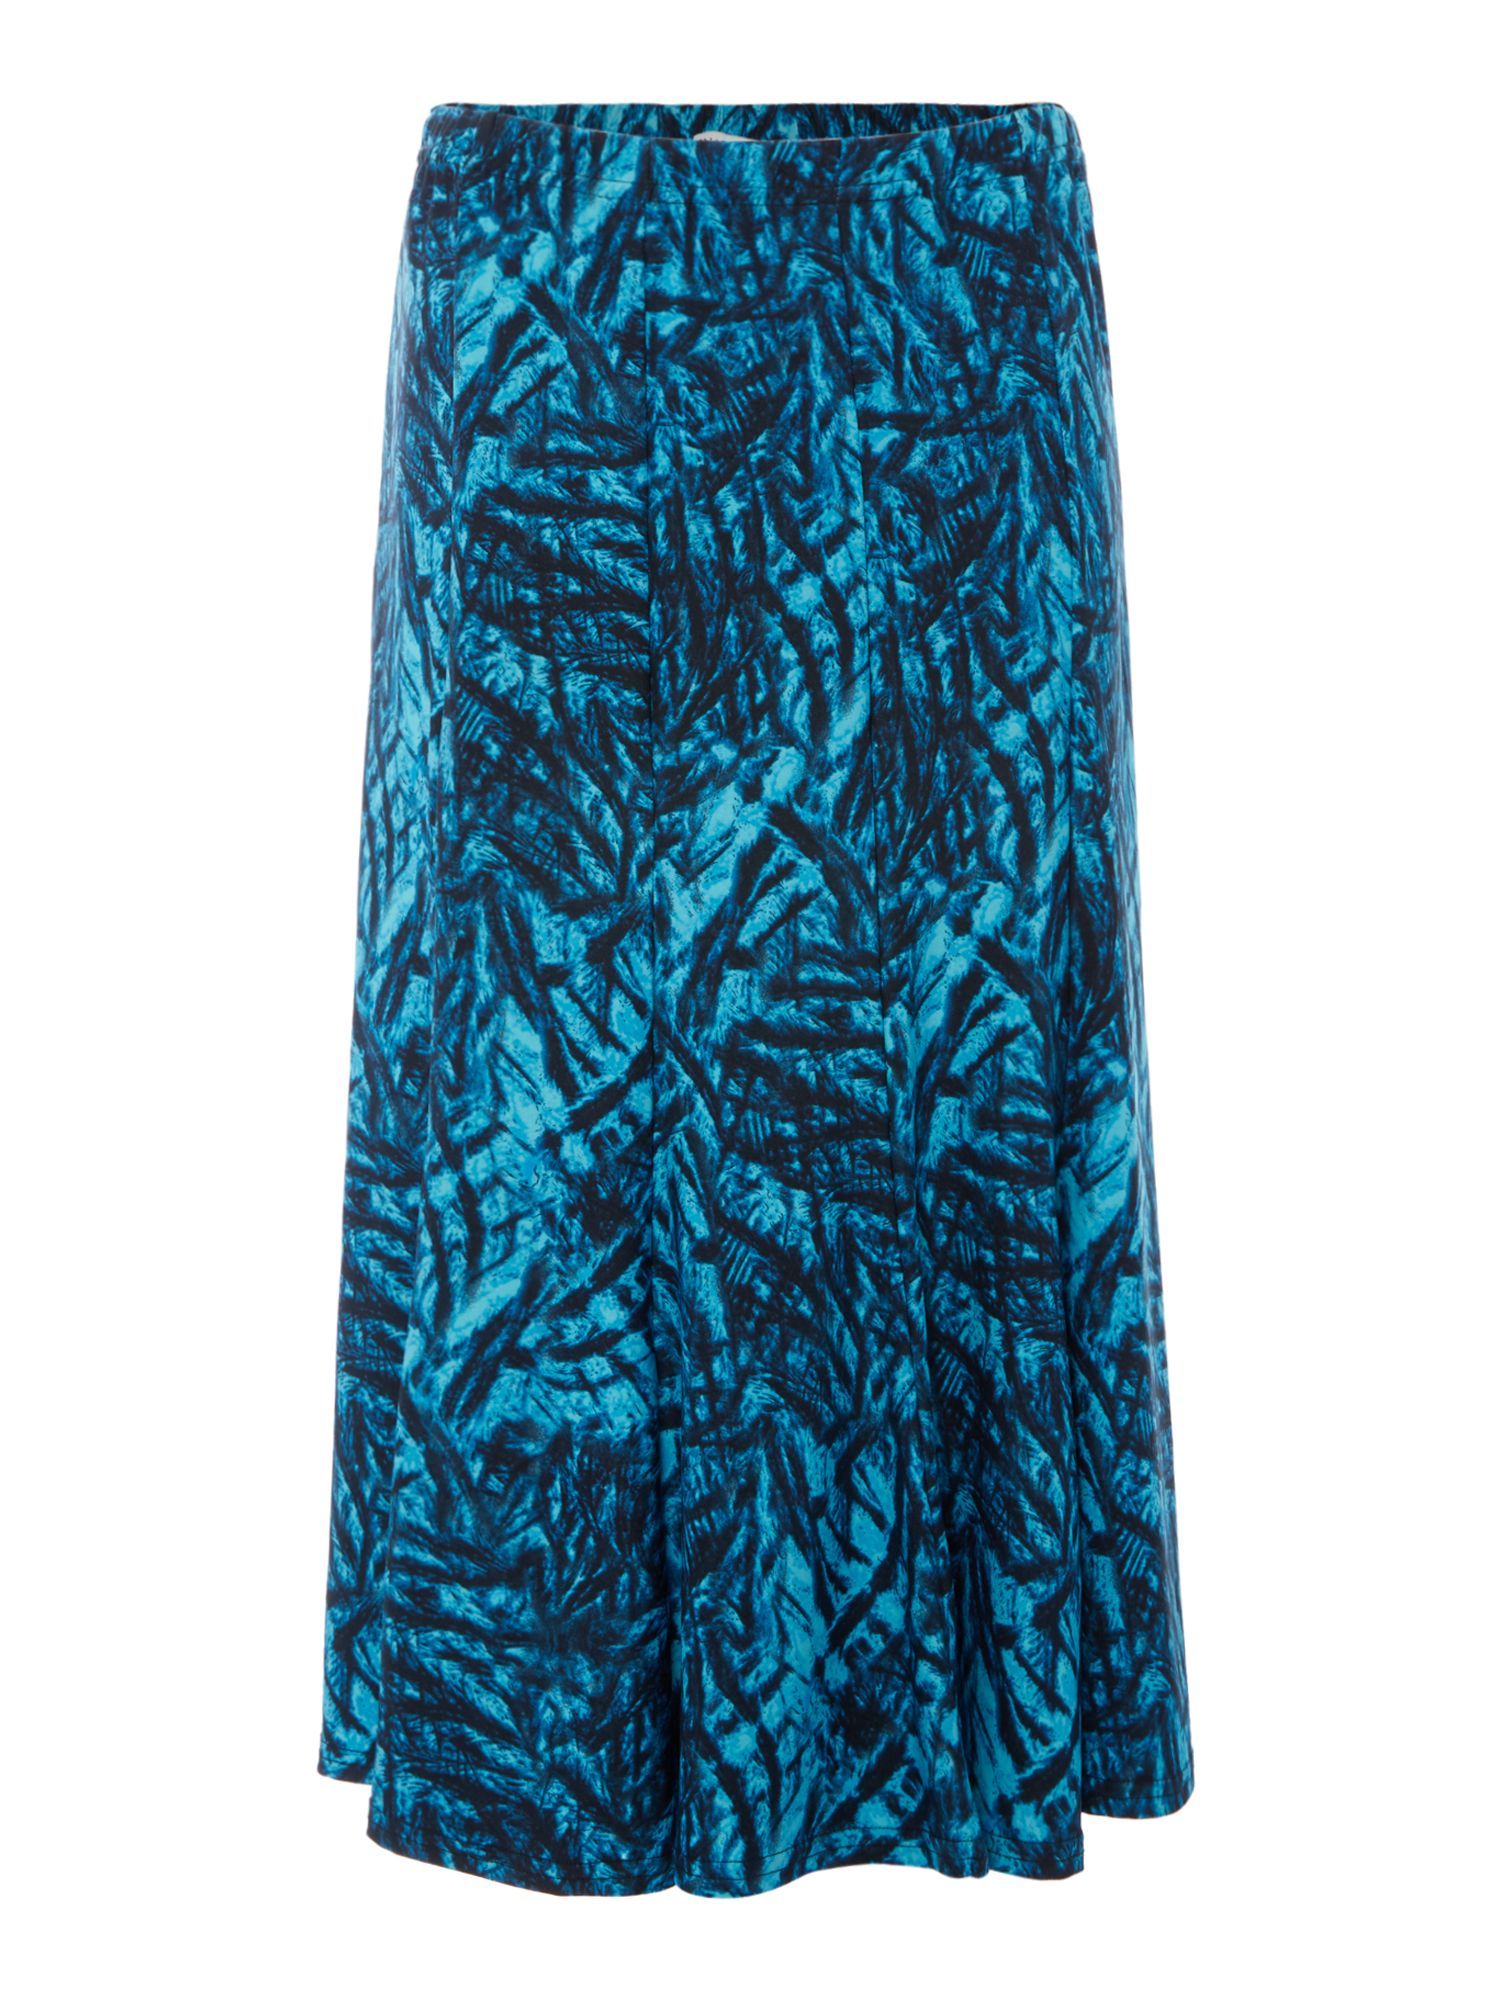 Annabelle Fit and Flare Printed Skirt, Blue